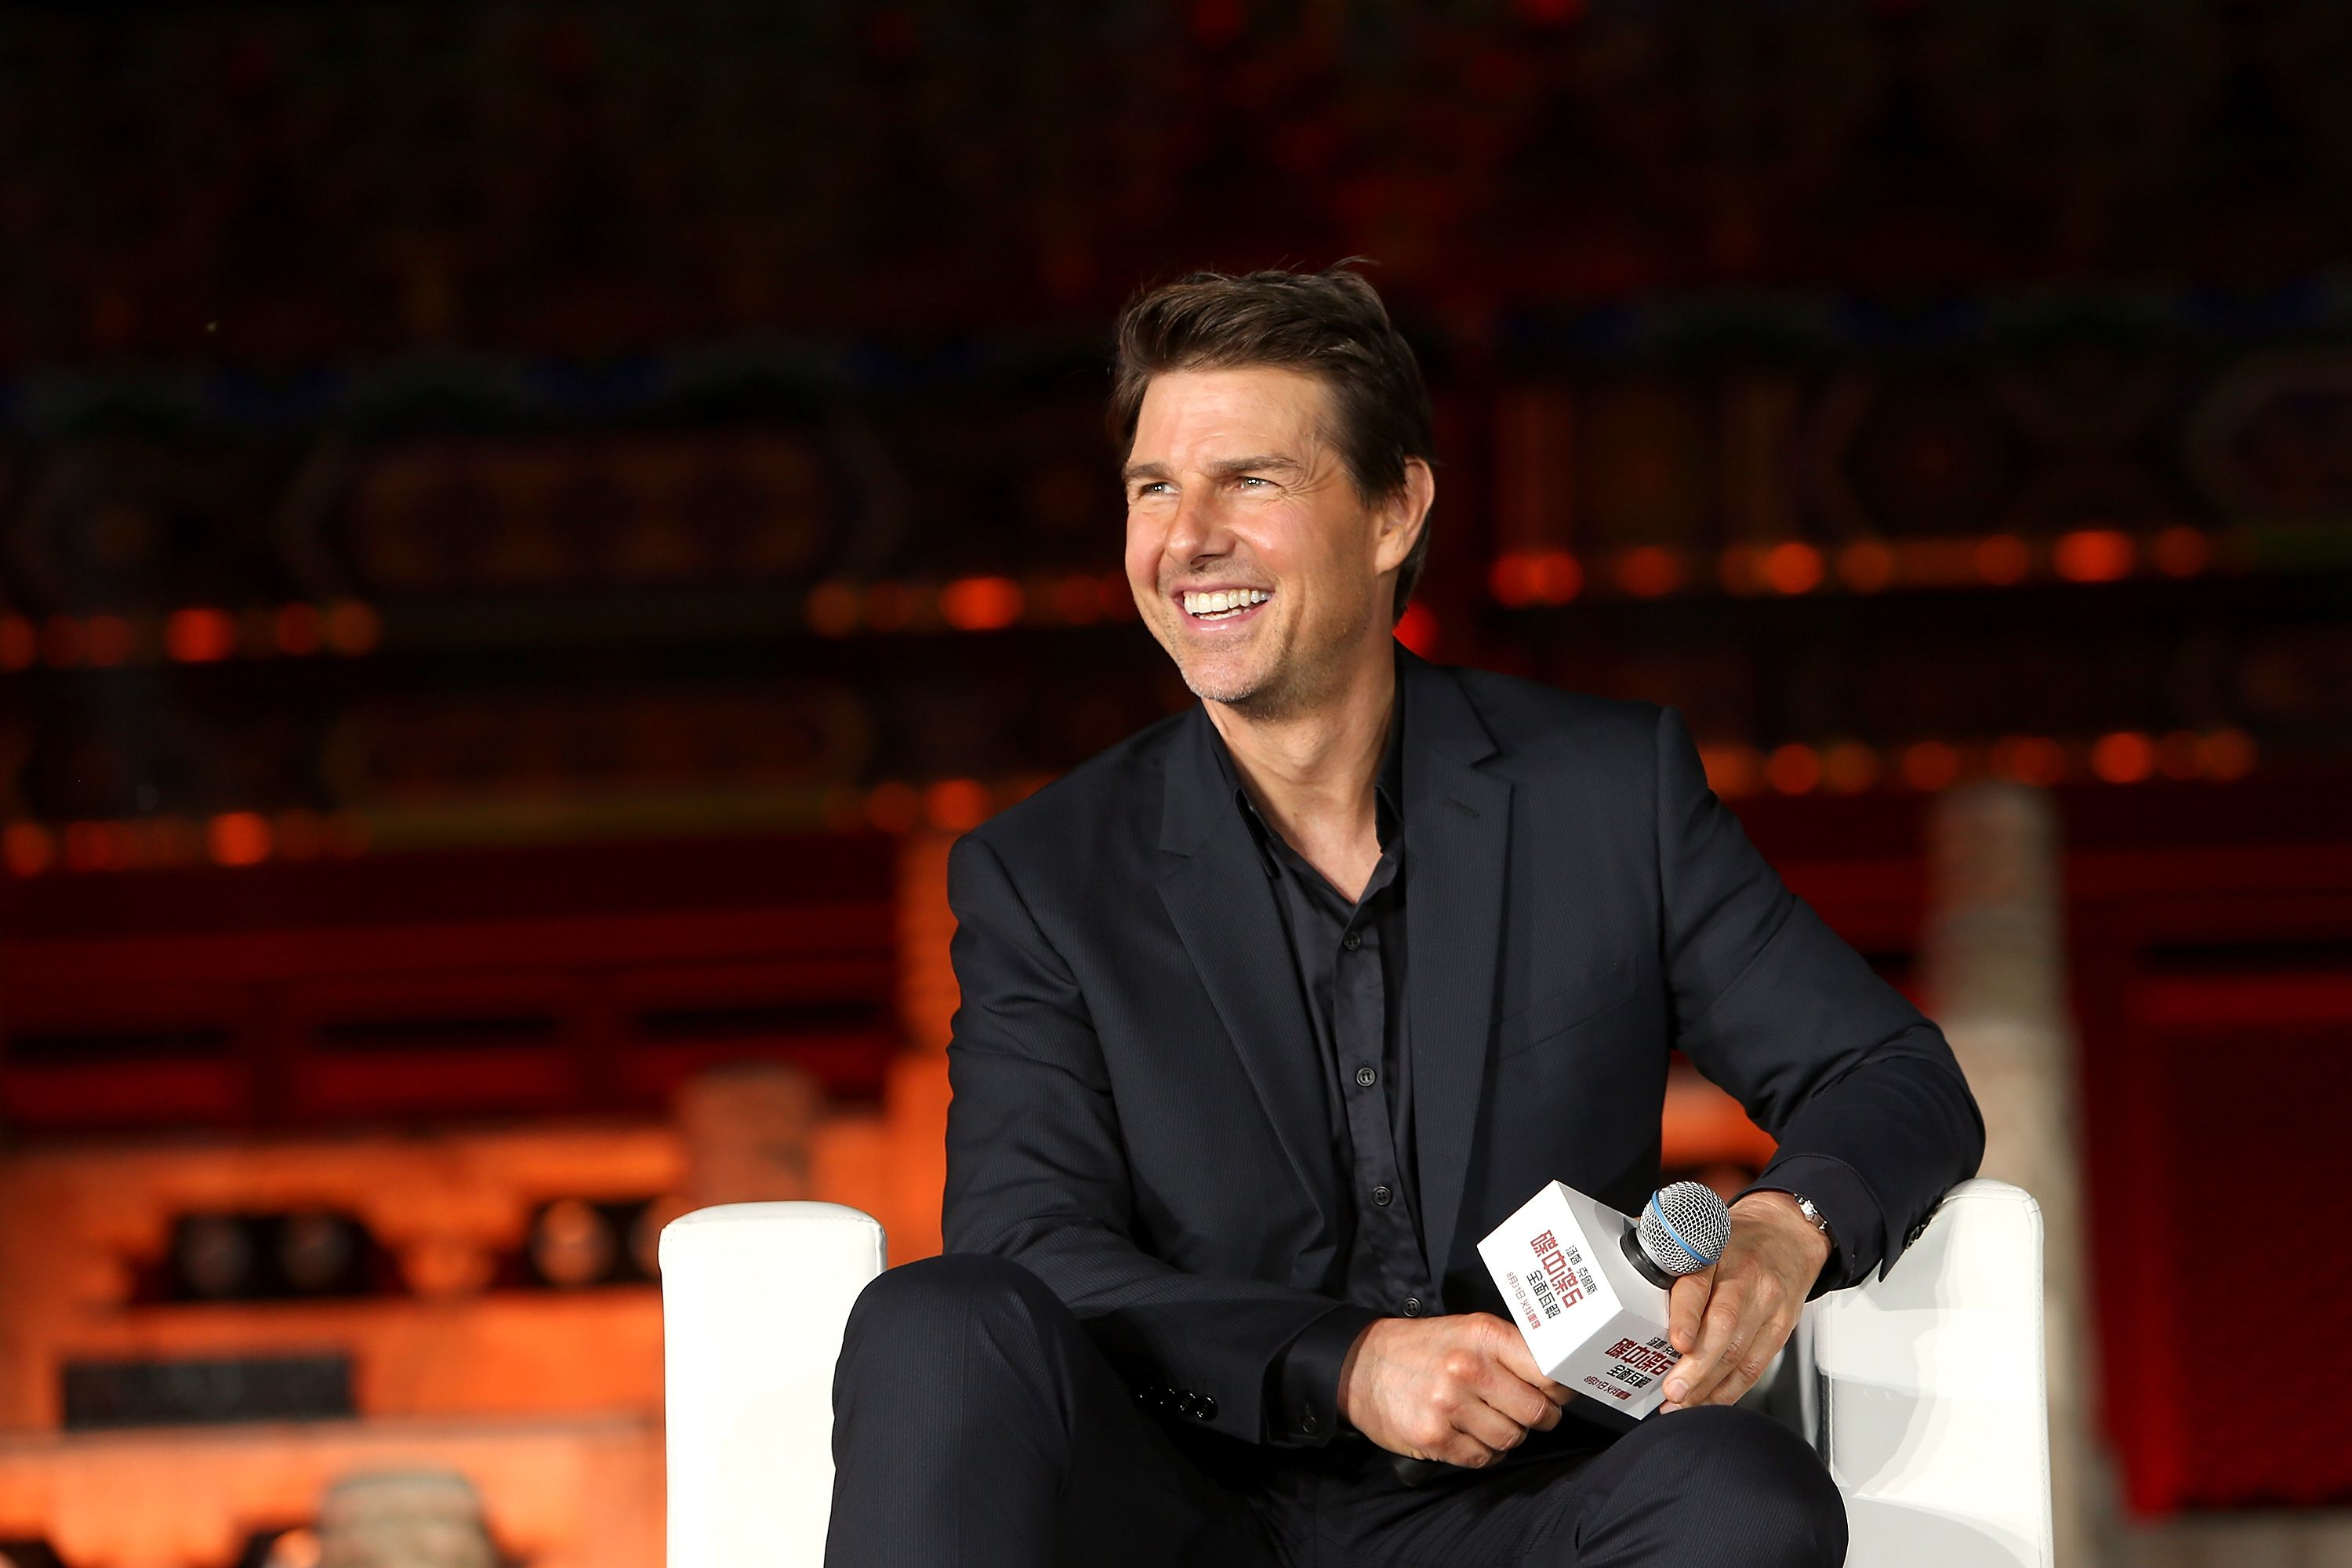 Now 58-Years-Old ,Tom Cruise Shares His Secrets to Staying So Youthful and His Training Plan